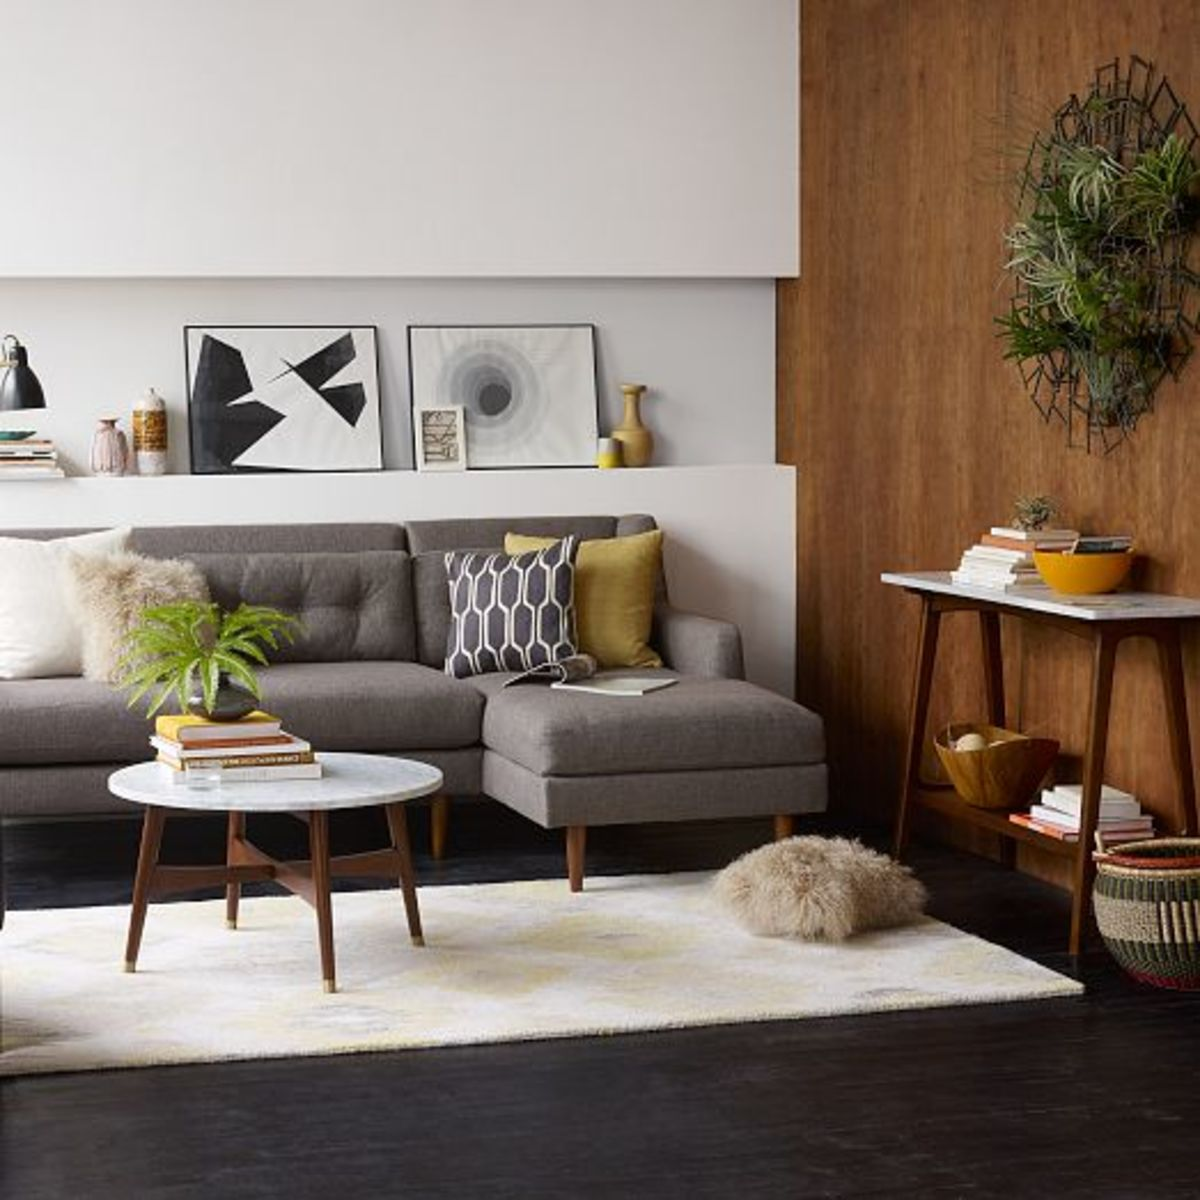 Magnificent Mid-Century Modern for Your Home - Organic ...